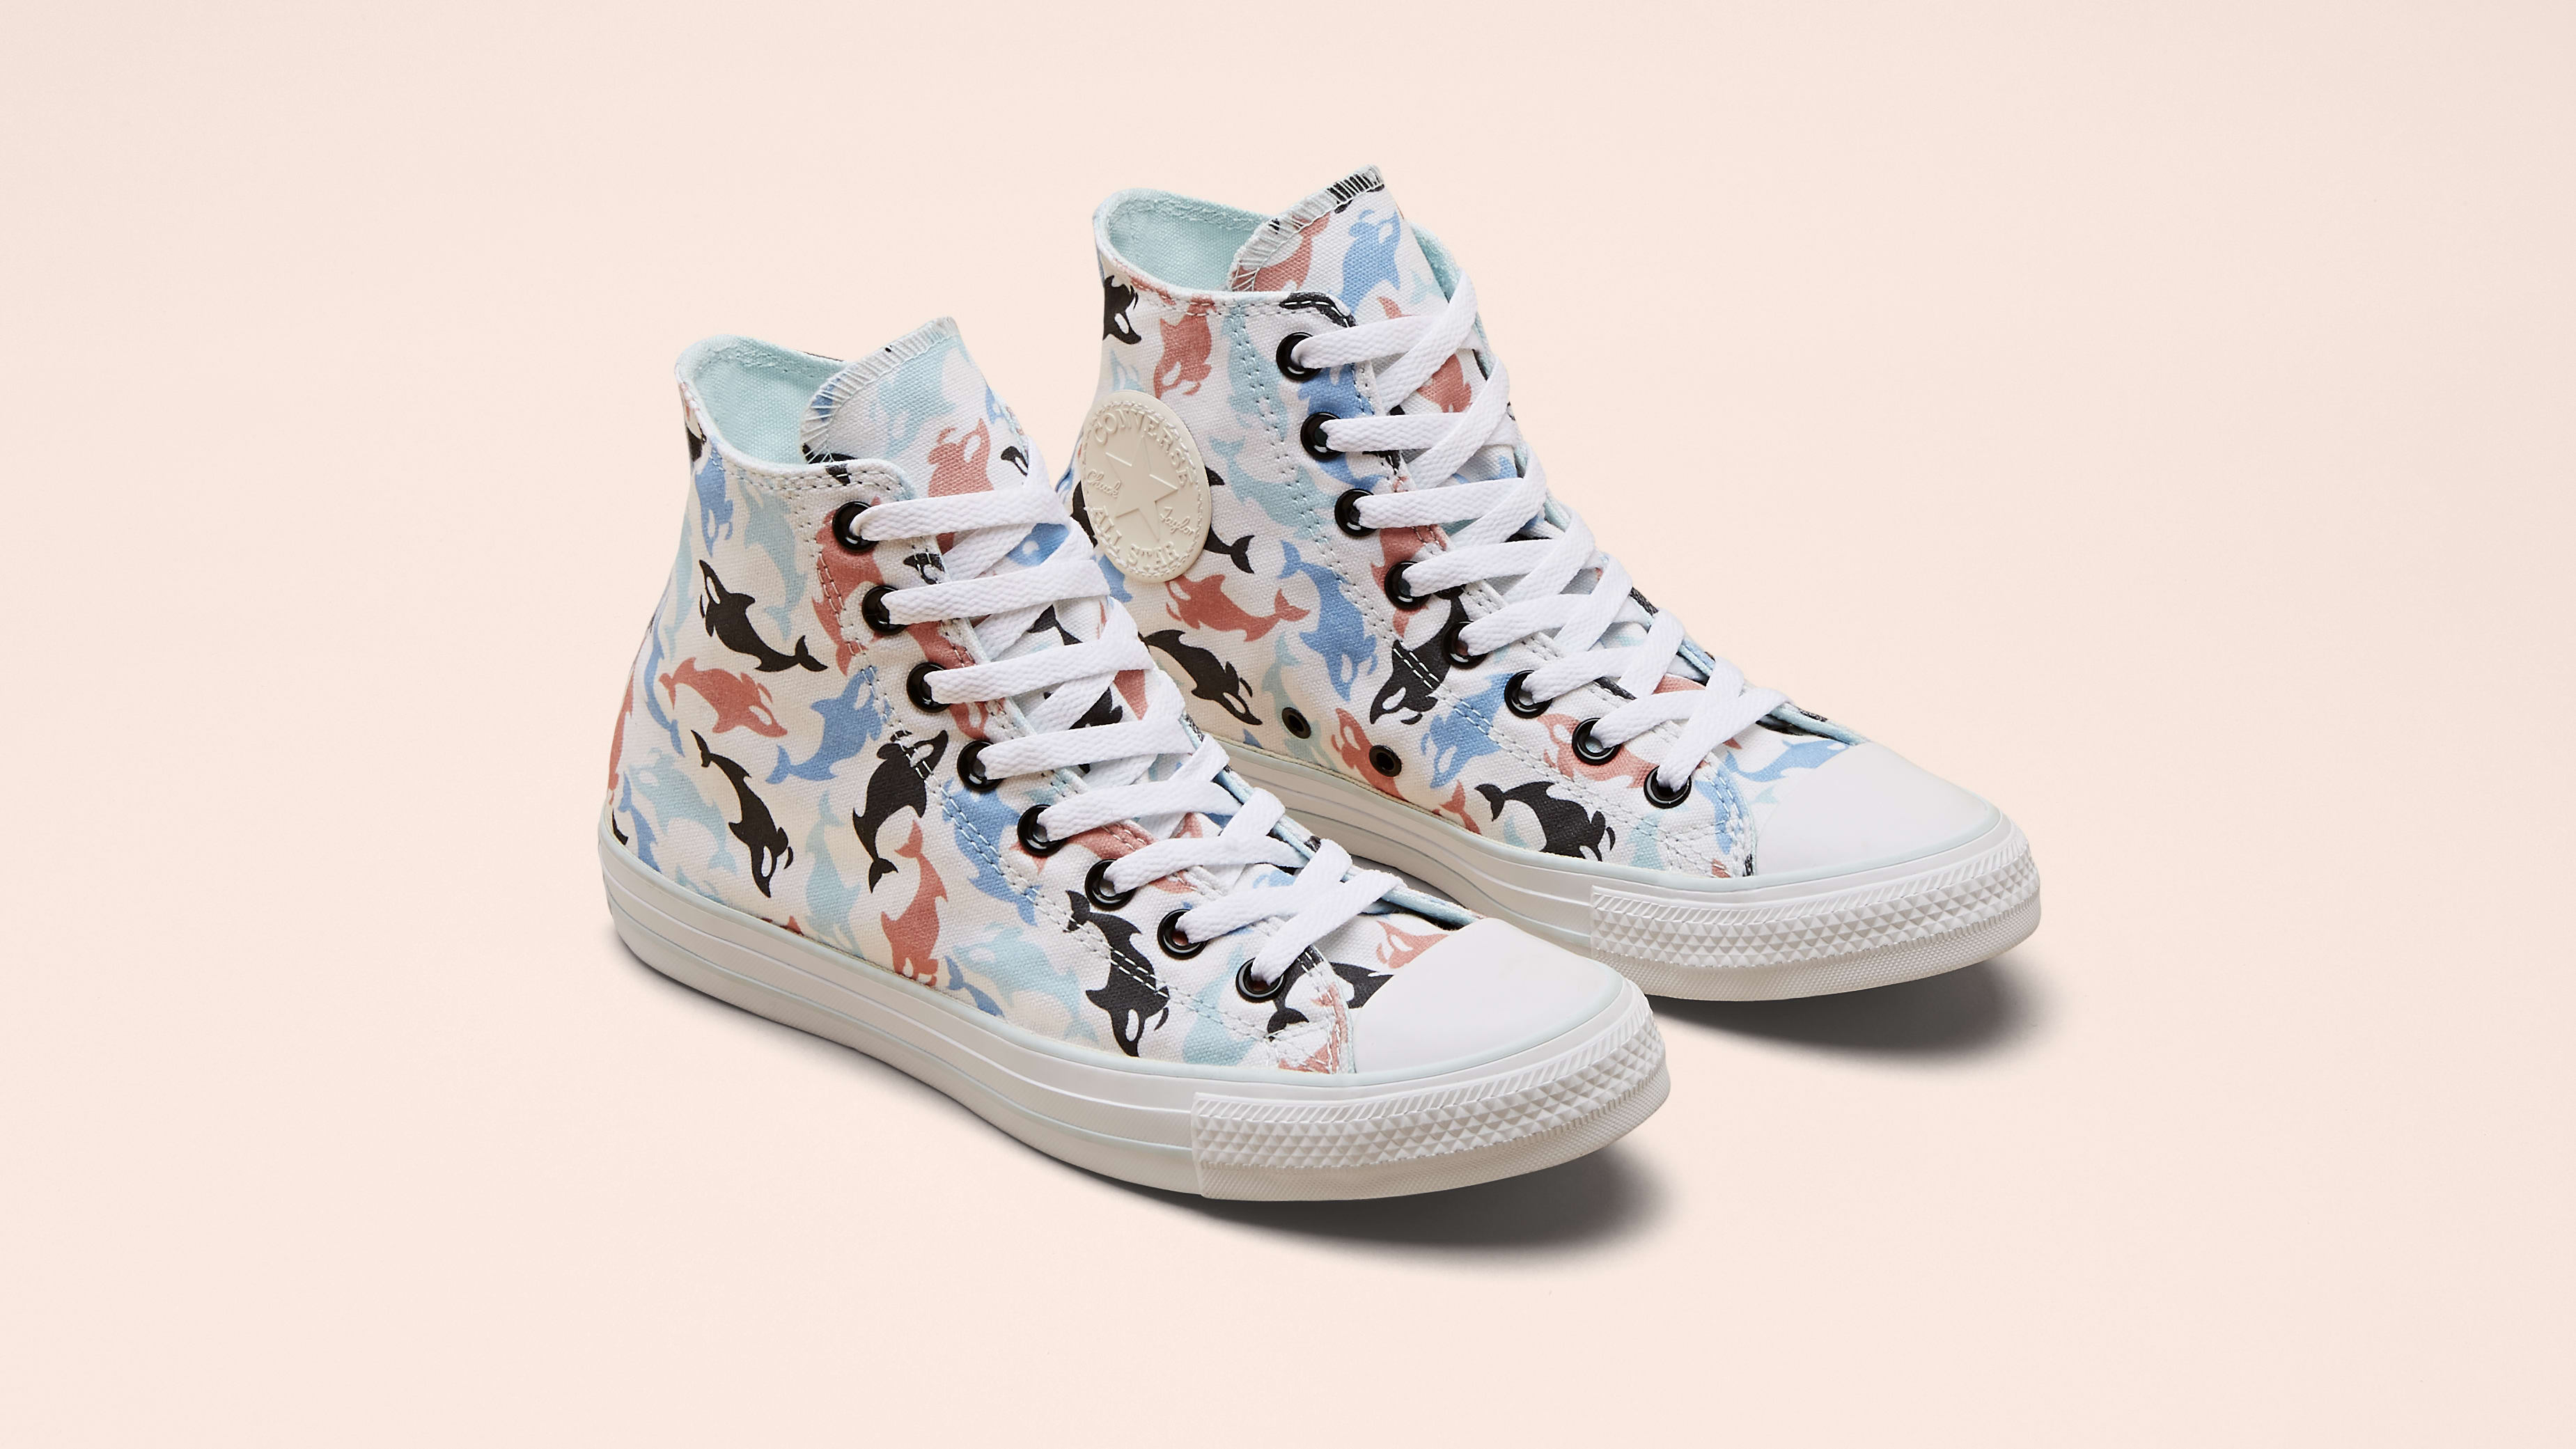 Millie Bobby Brown x Converse 'Millie By You' 8